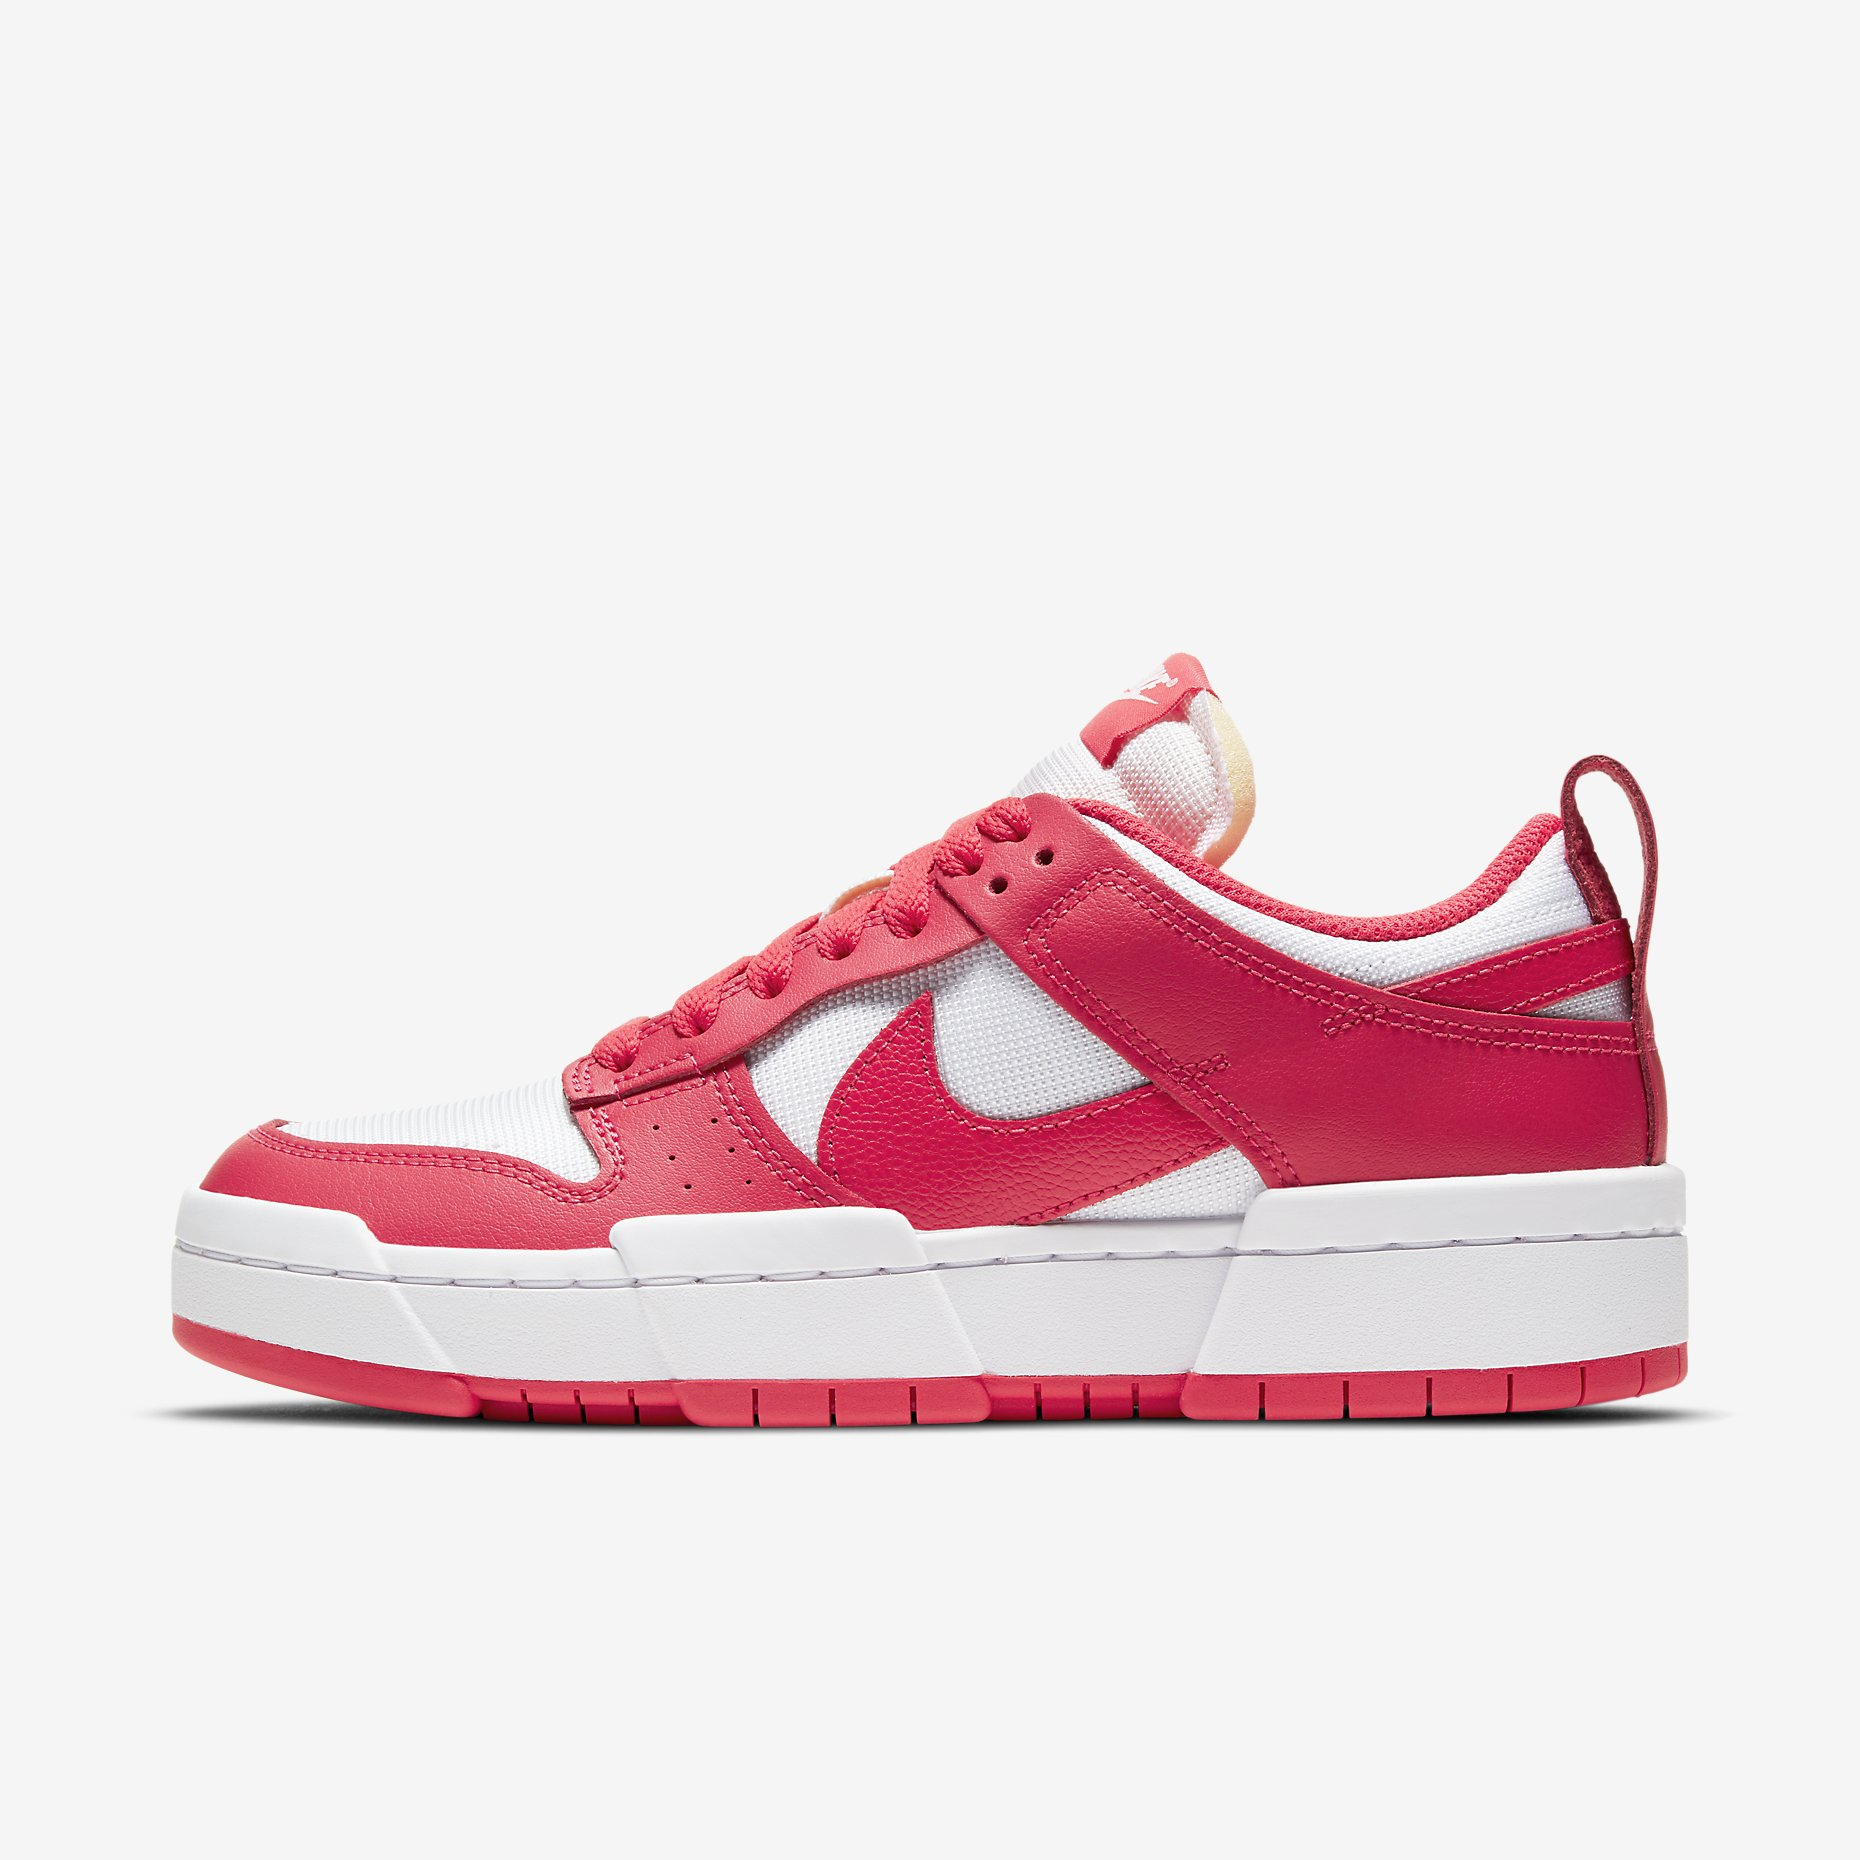 Women's Nike Dunk Disrupt 'Siren Red/White'}